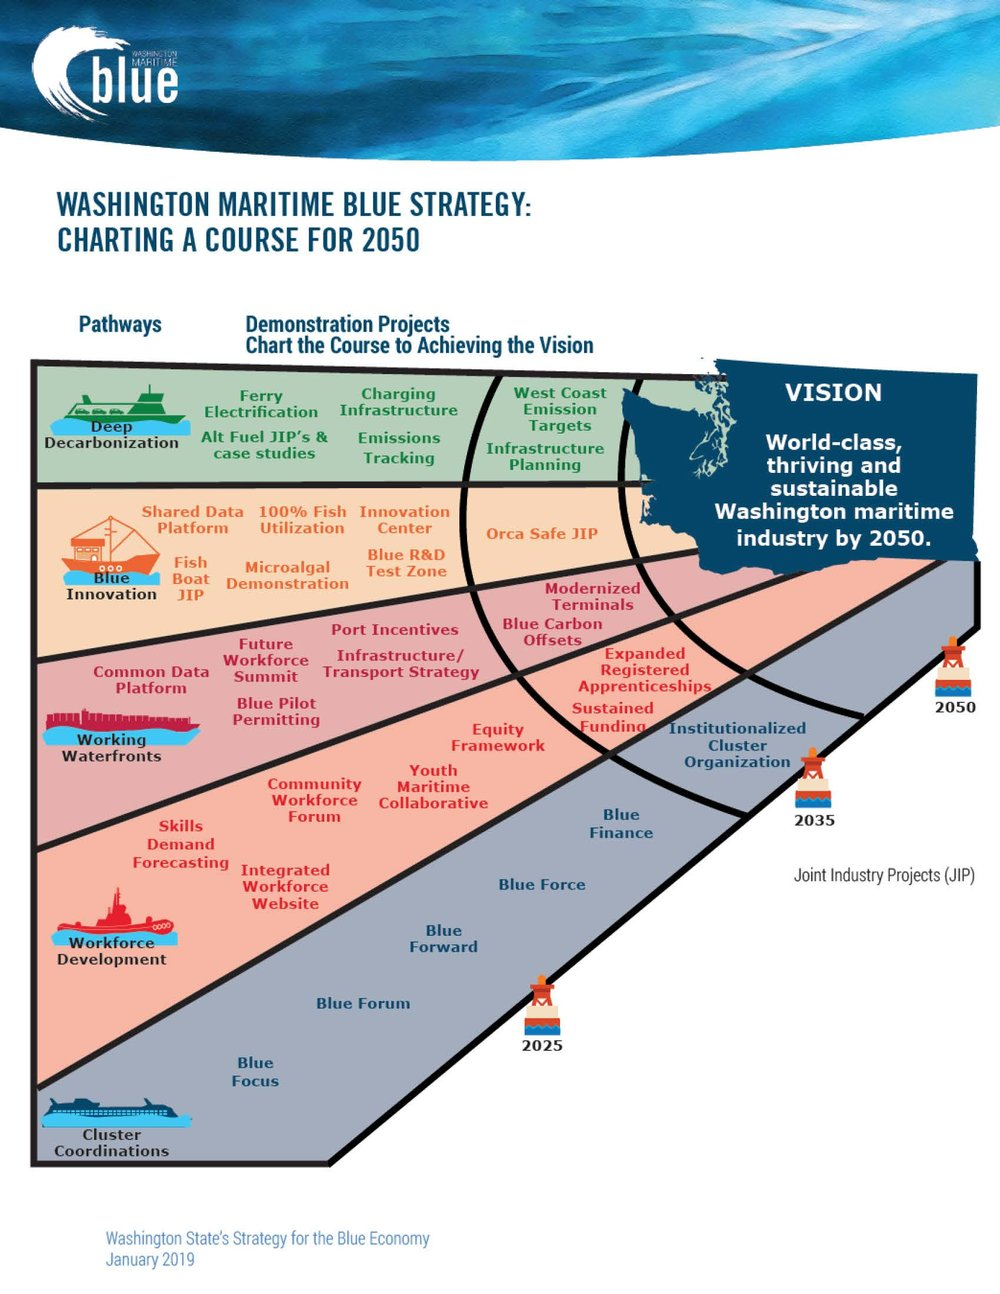 MaritimeBlue_Main Report_Final_1-4-19_Page_14.jpg